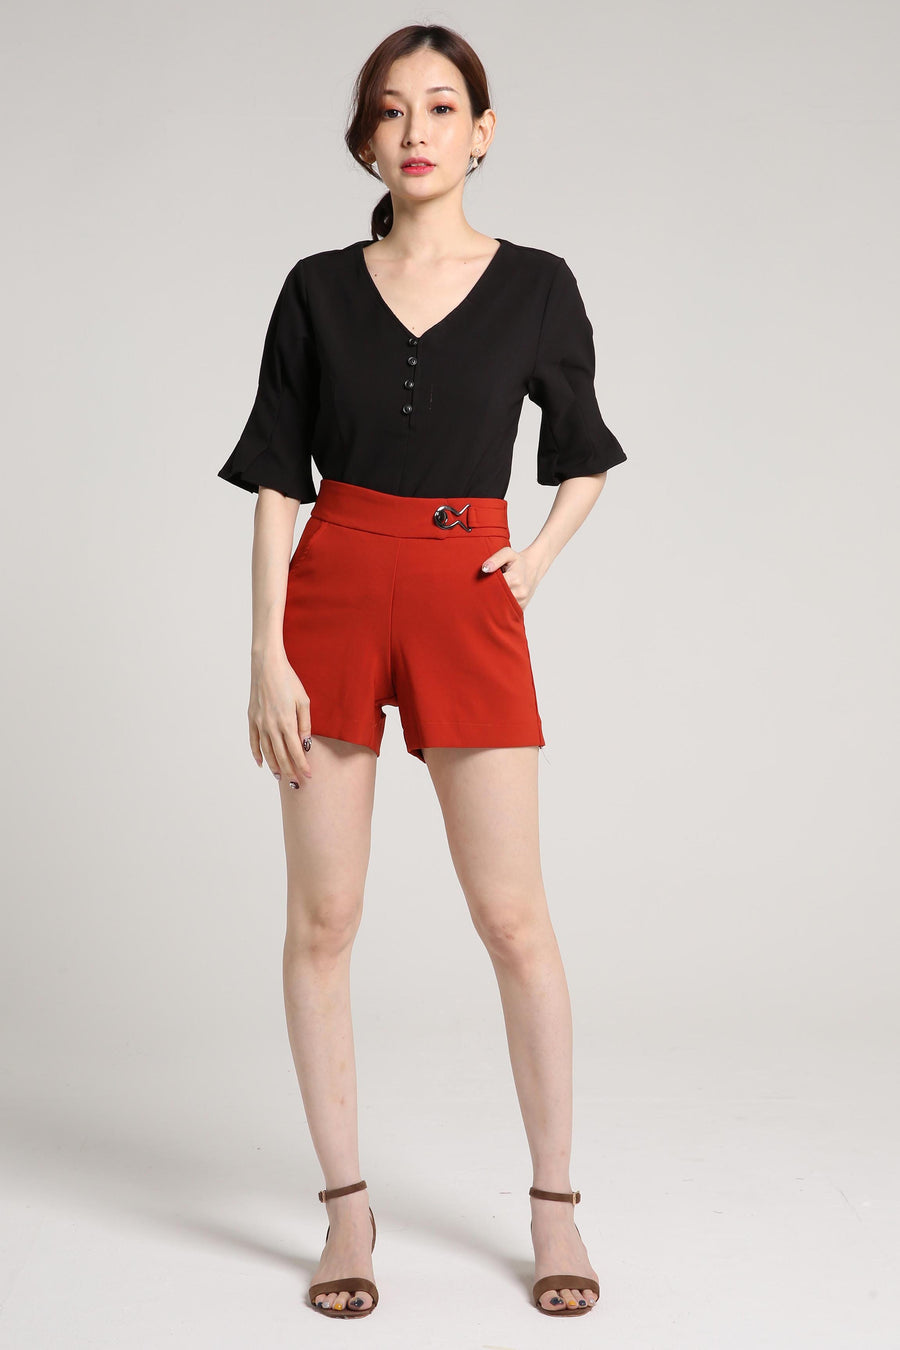 V-Neck Short Sleeve Blouse 2024 - ample-couture